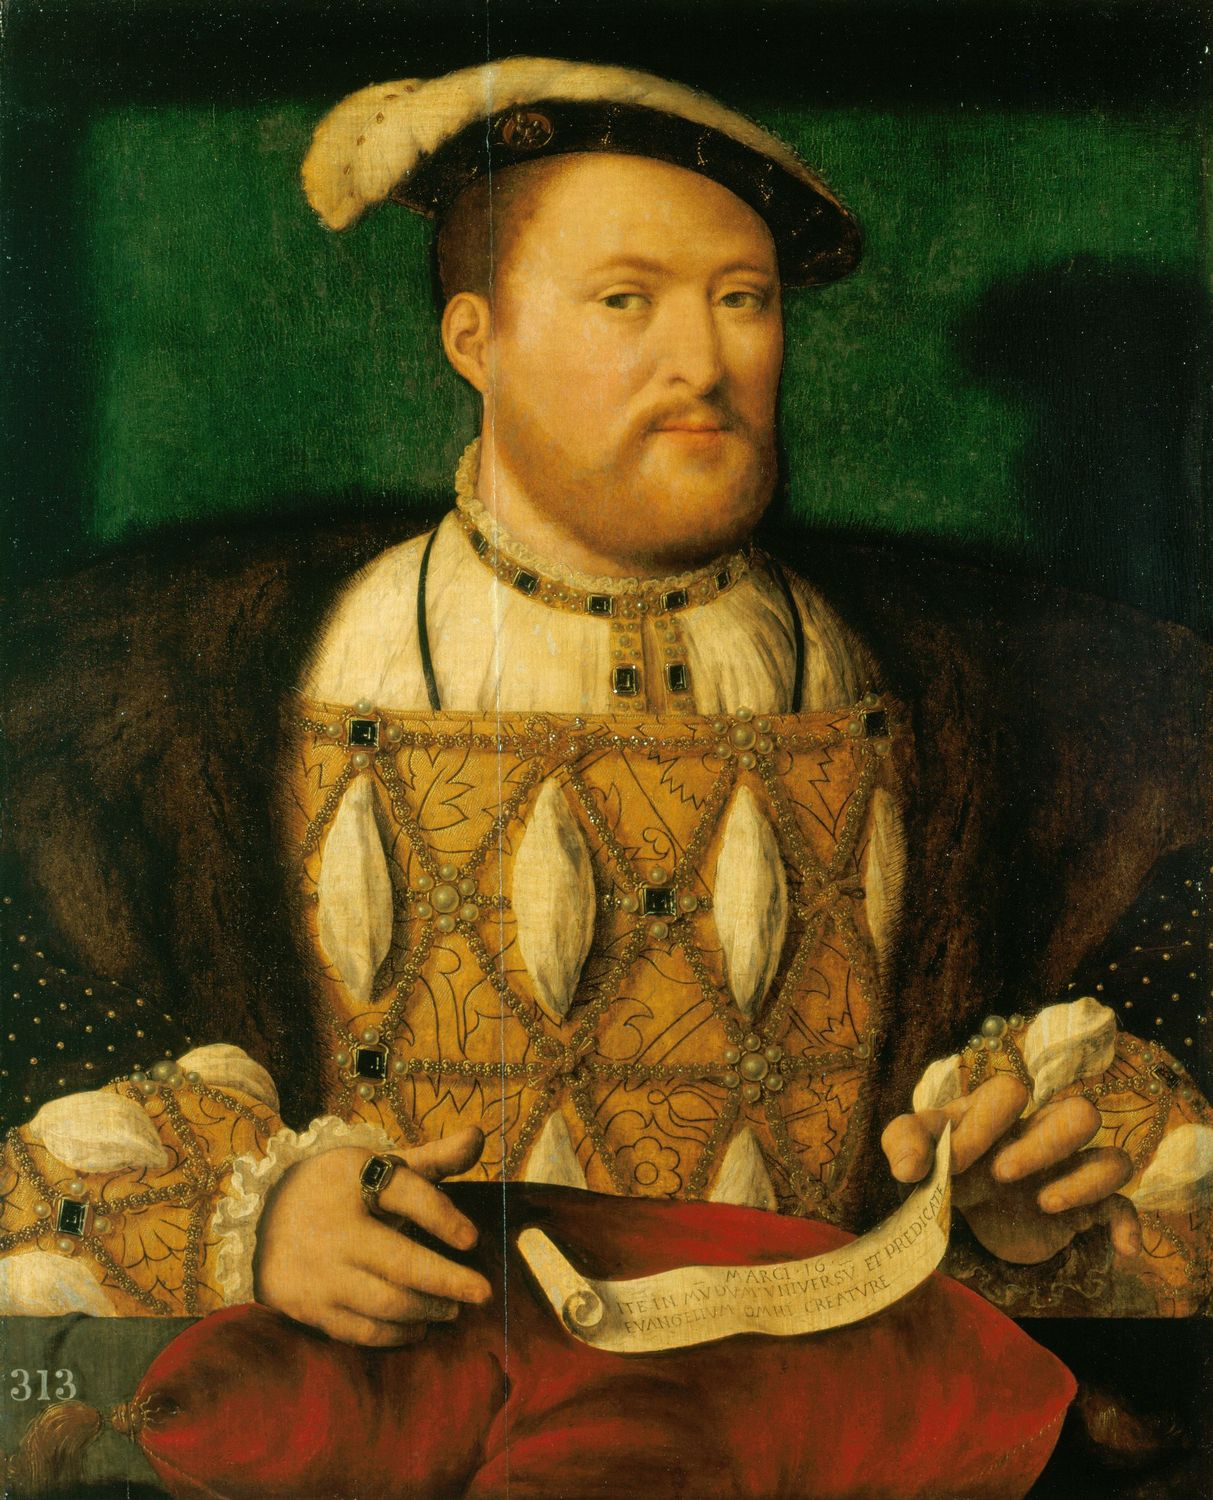 Henry VIII was the first Tudor monarch to try subjugating the Irish during Gráinne Mhaol's time